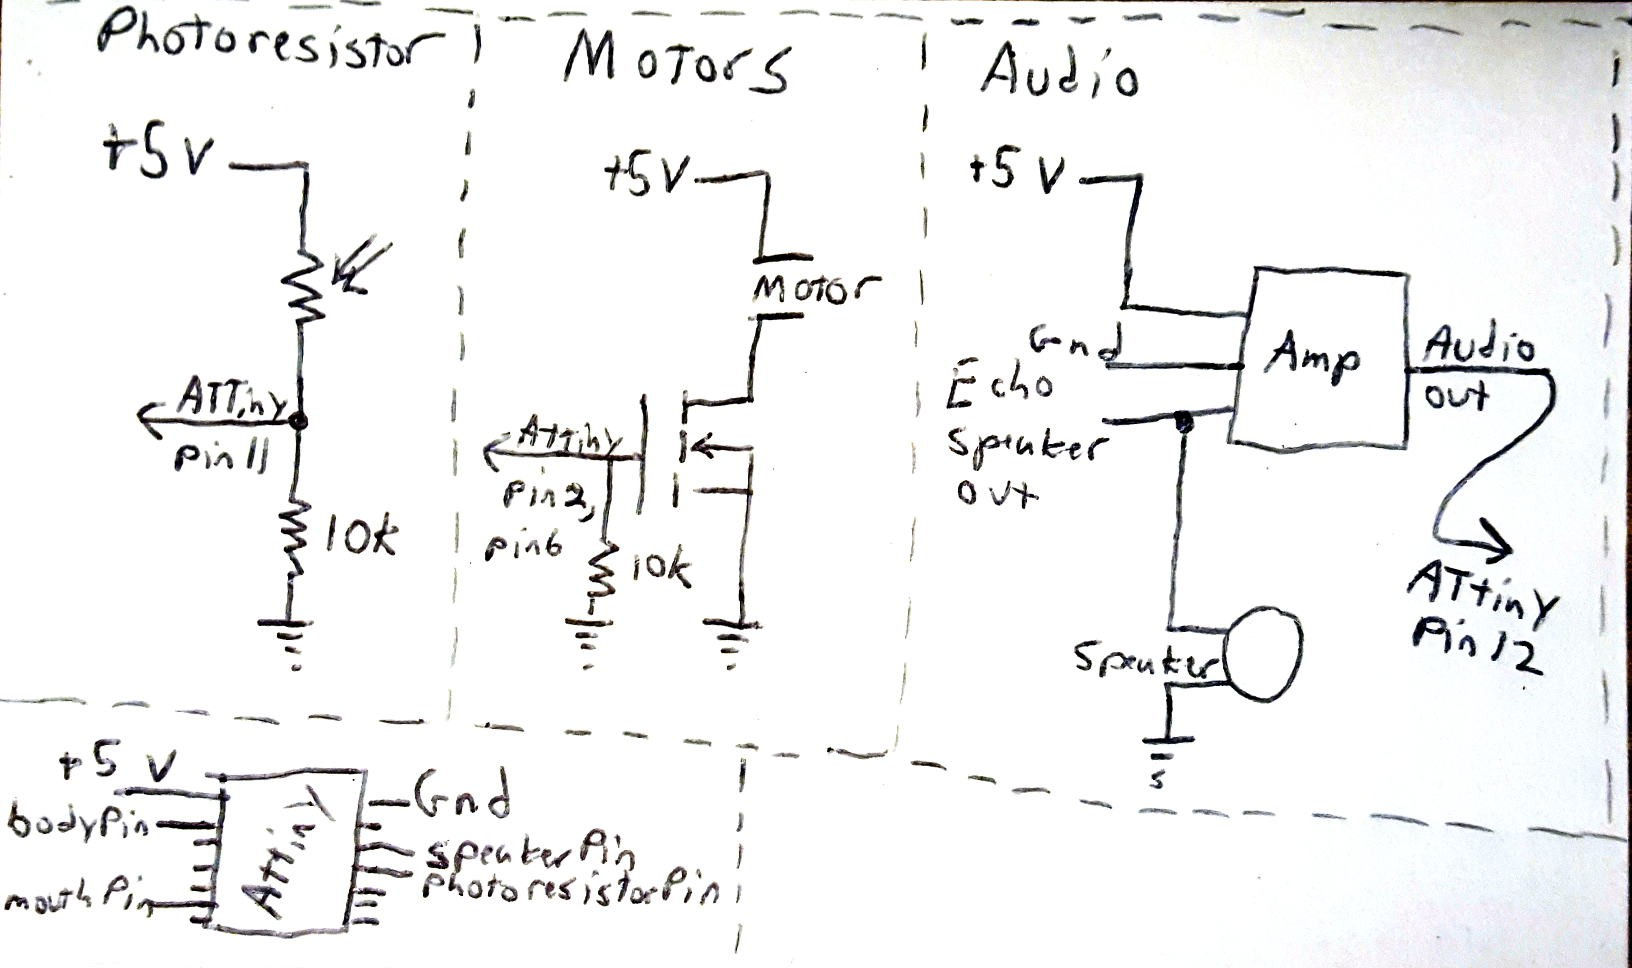 Bilexa Bass Attiny2313 Based Lan Cable Tester Schematic 5v From The Echo Dot And Pipe It To Attiny Audio Amplifier This Way Everything Is Powered Single Coming In Enclosure